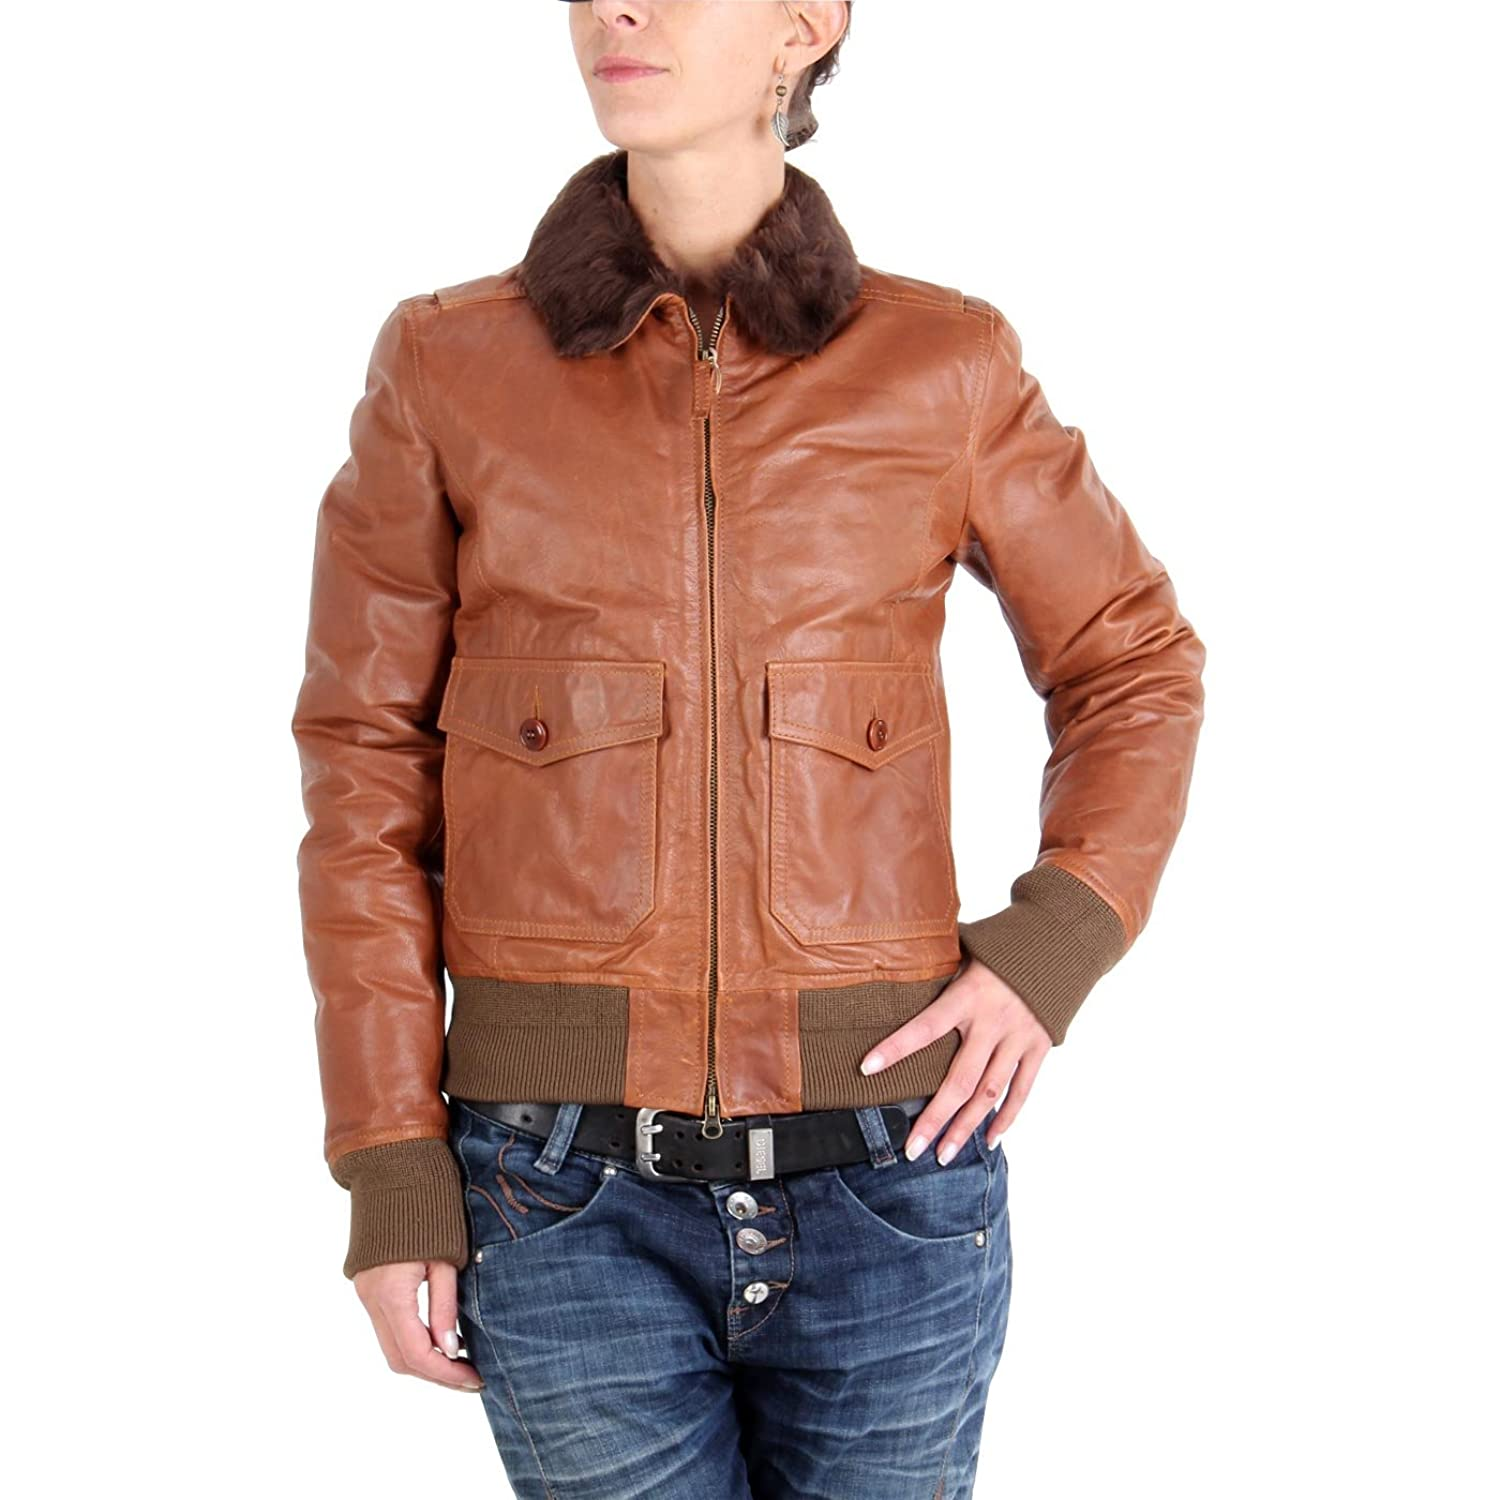 MUSEUM Damen Winter Lederjacke Braun MD28119